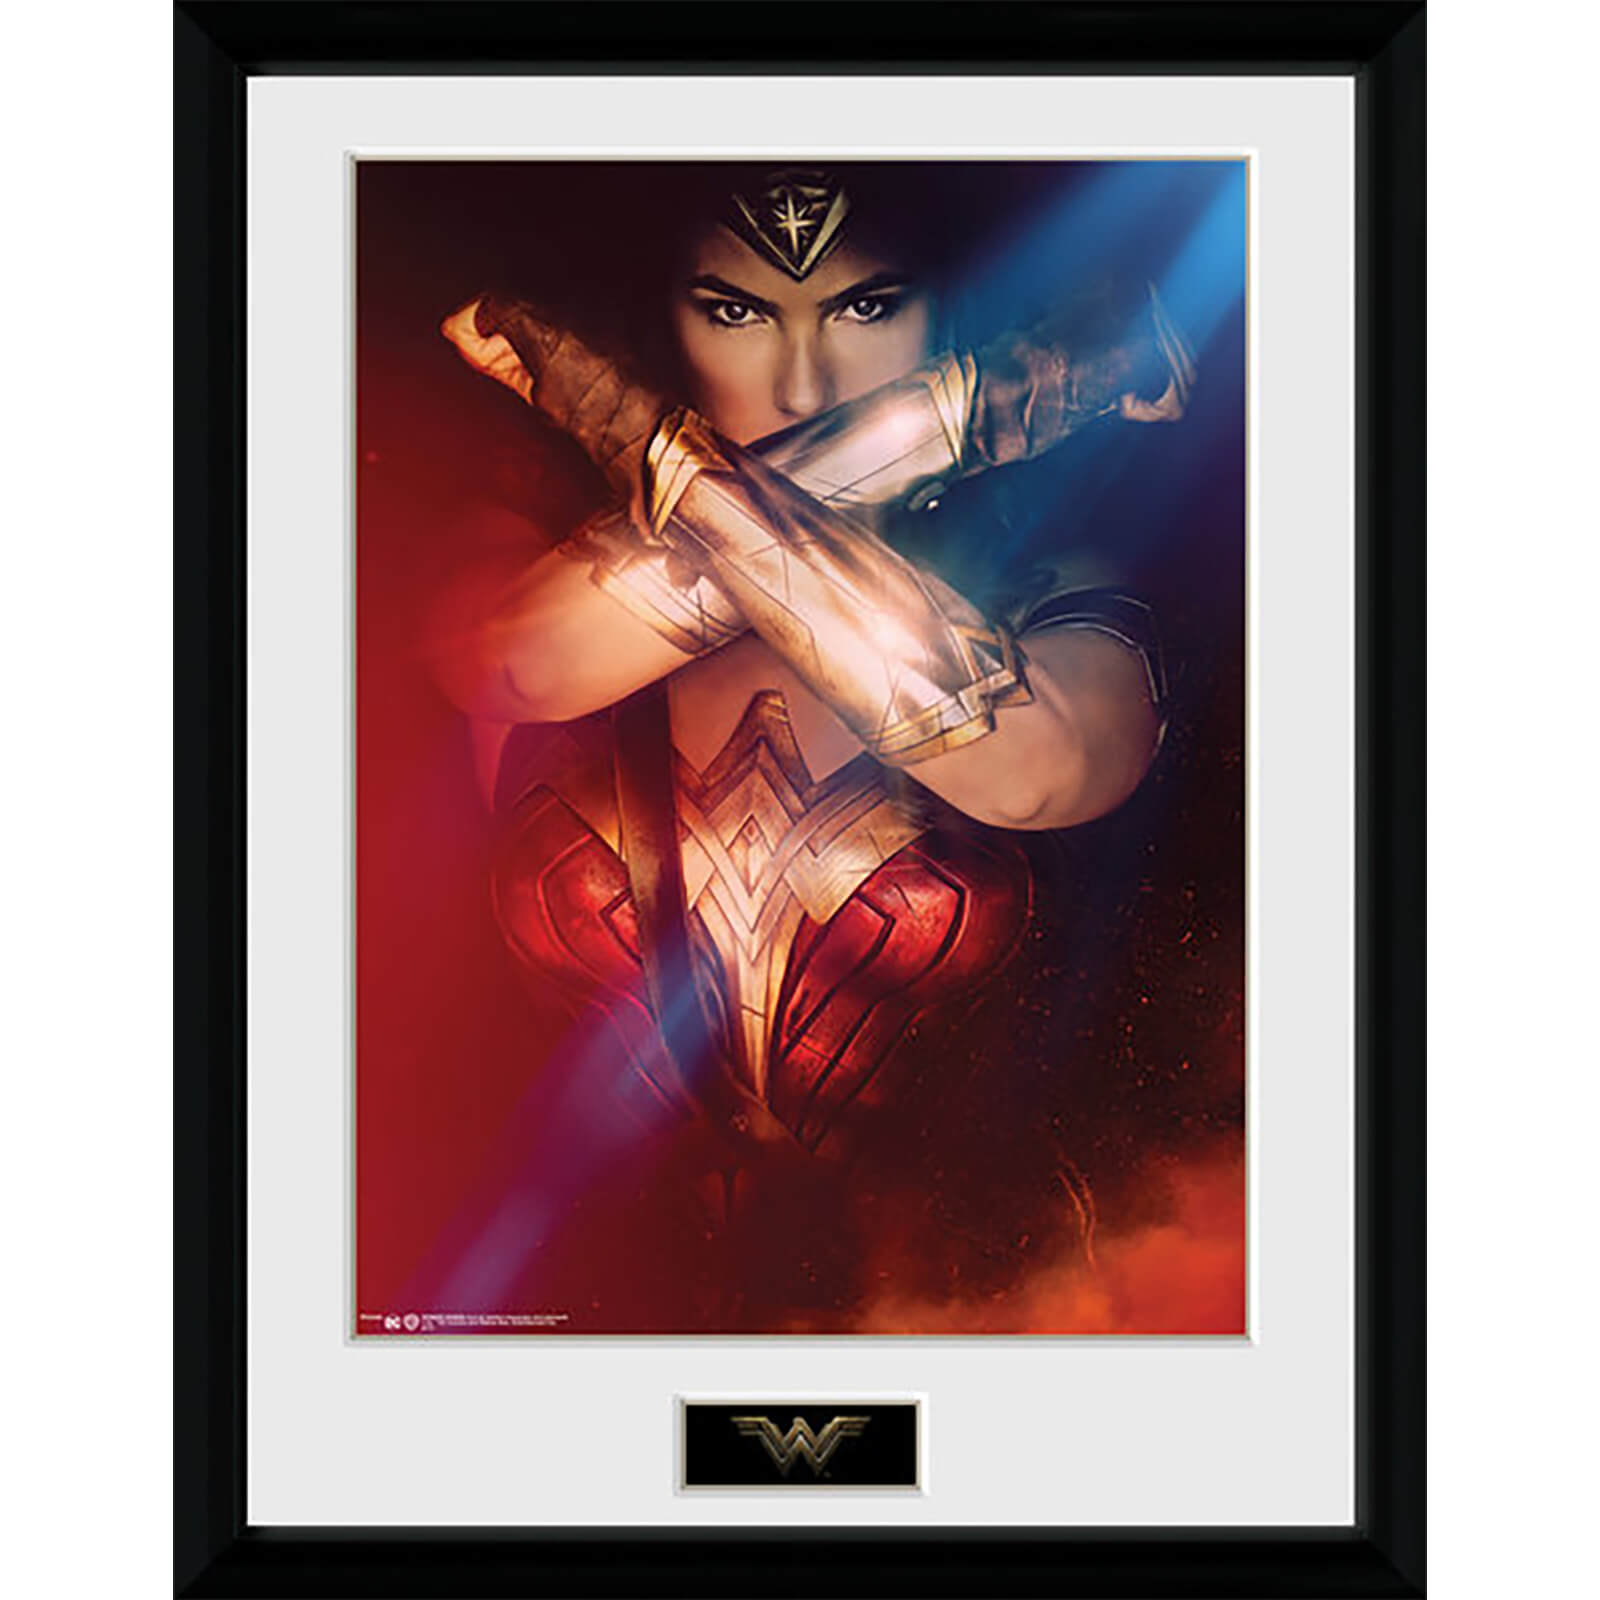 Wonder Woman Cross - 16 x 12 Inches Framed Photograph